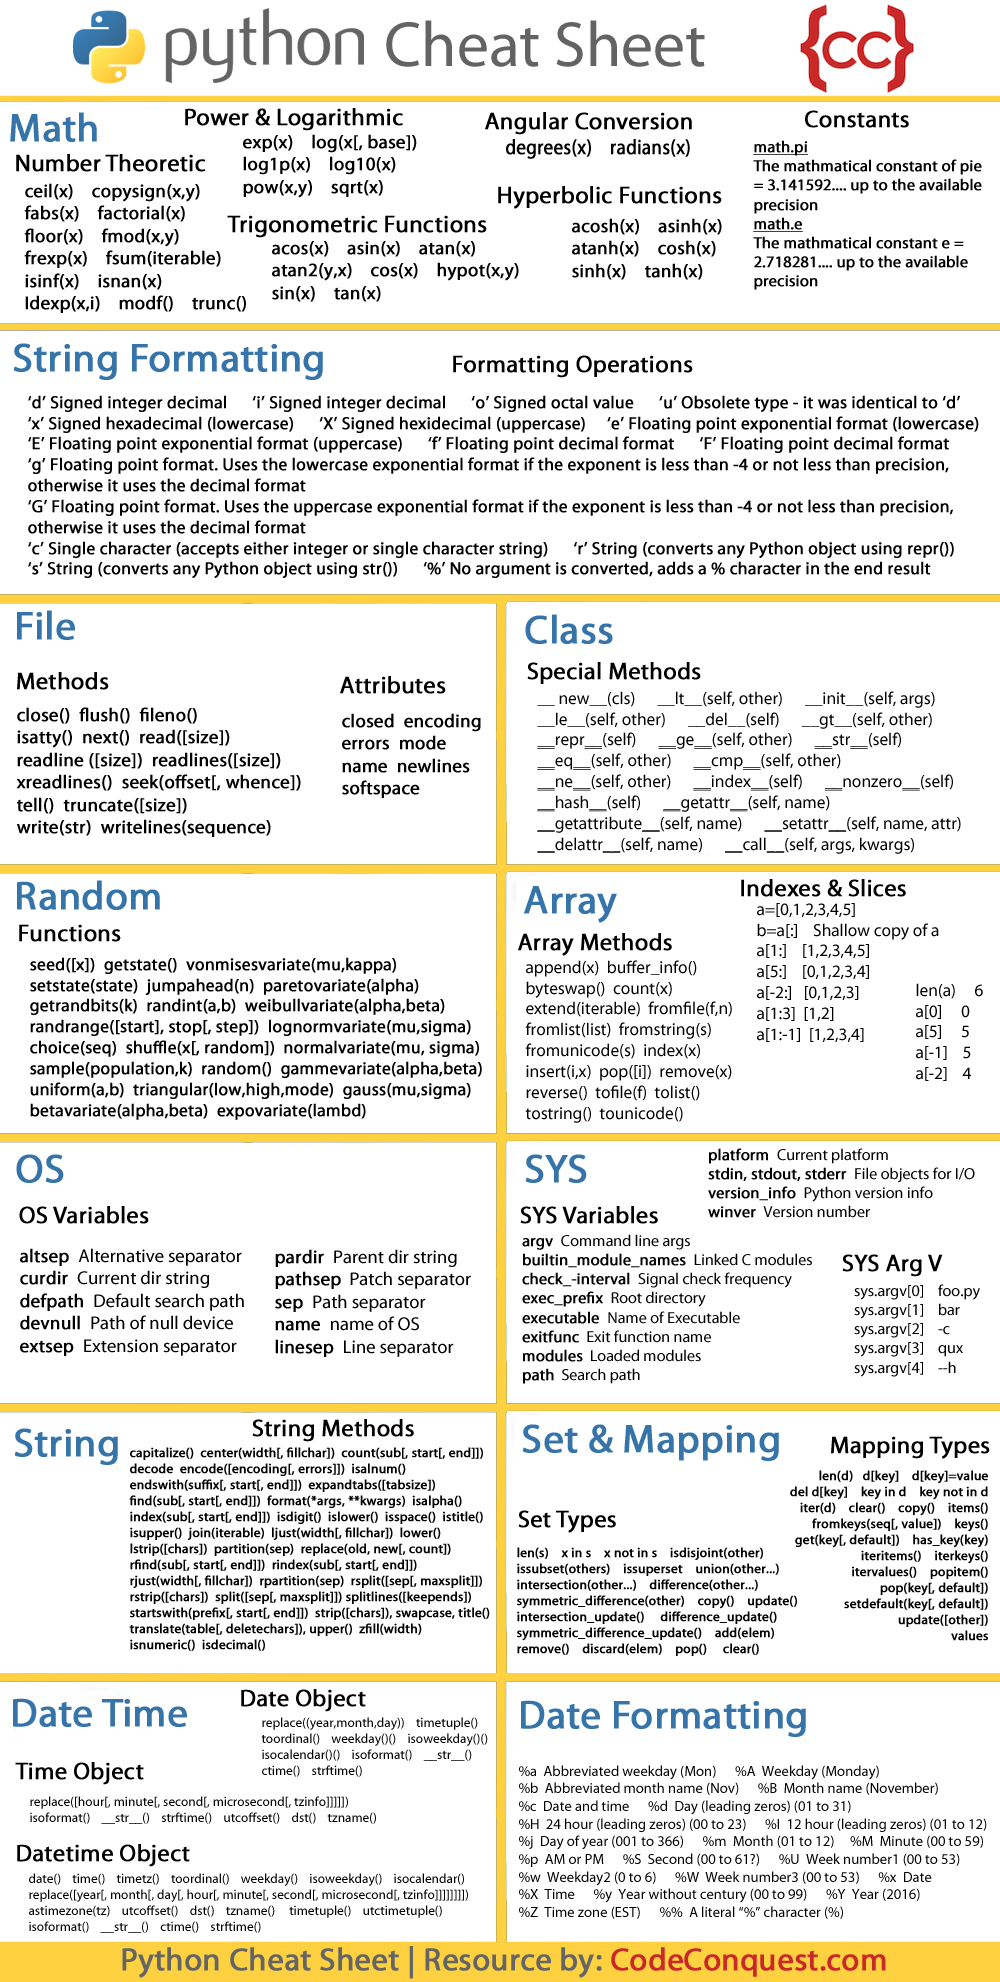 Python Cheat Sheet by CodeConquestDOTcom